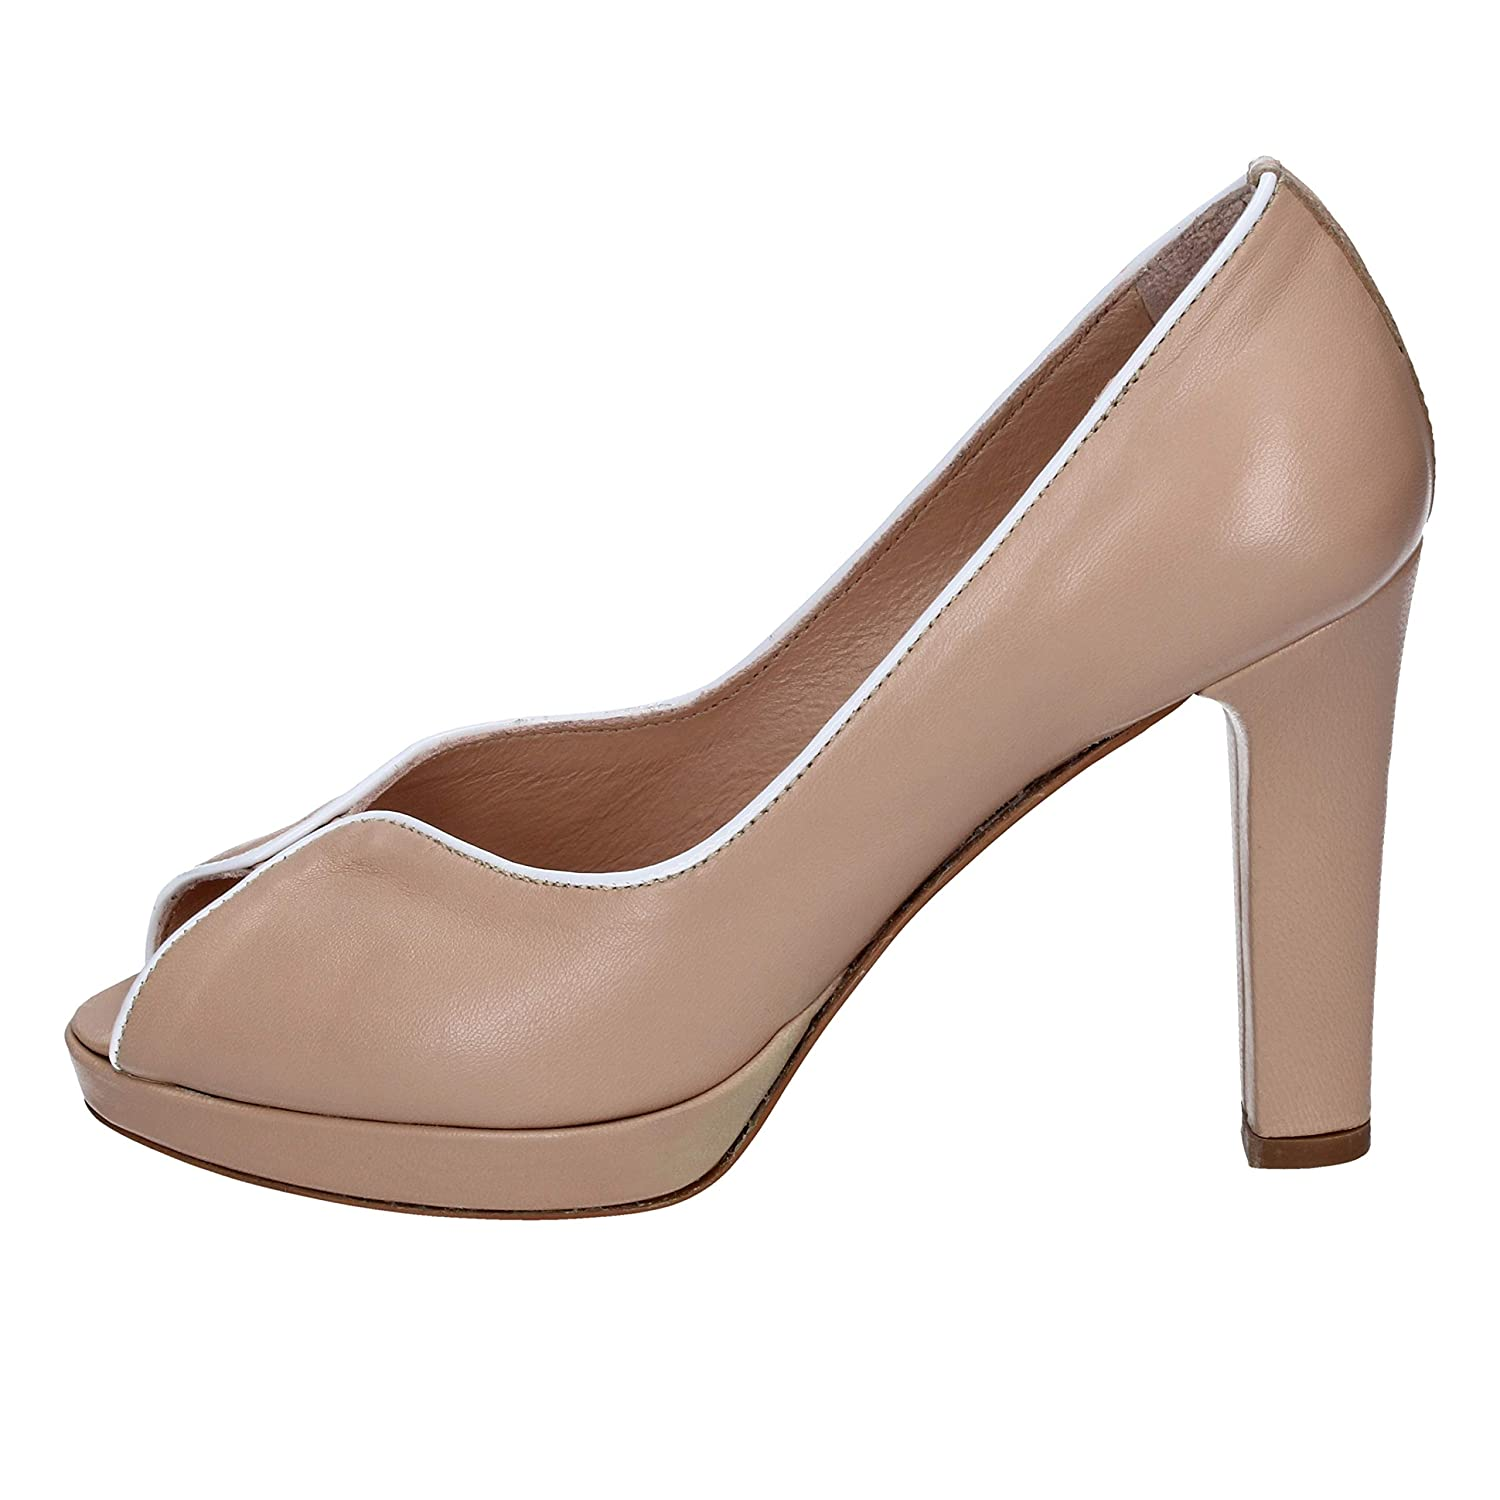 CLOE Pumps Damen Synthetisches Leder beige